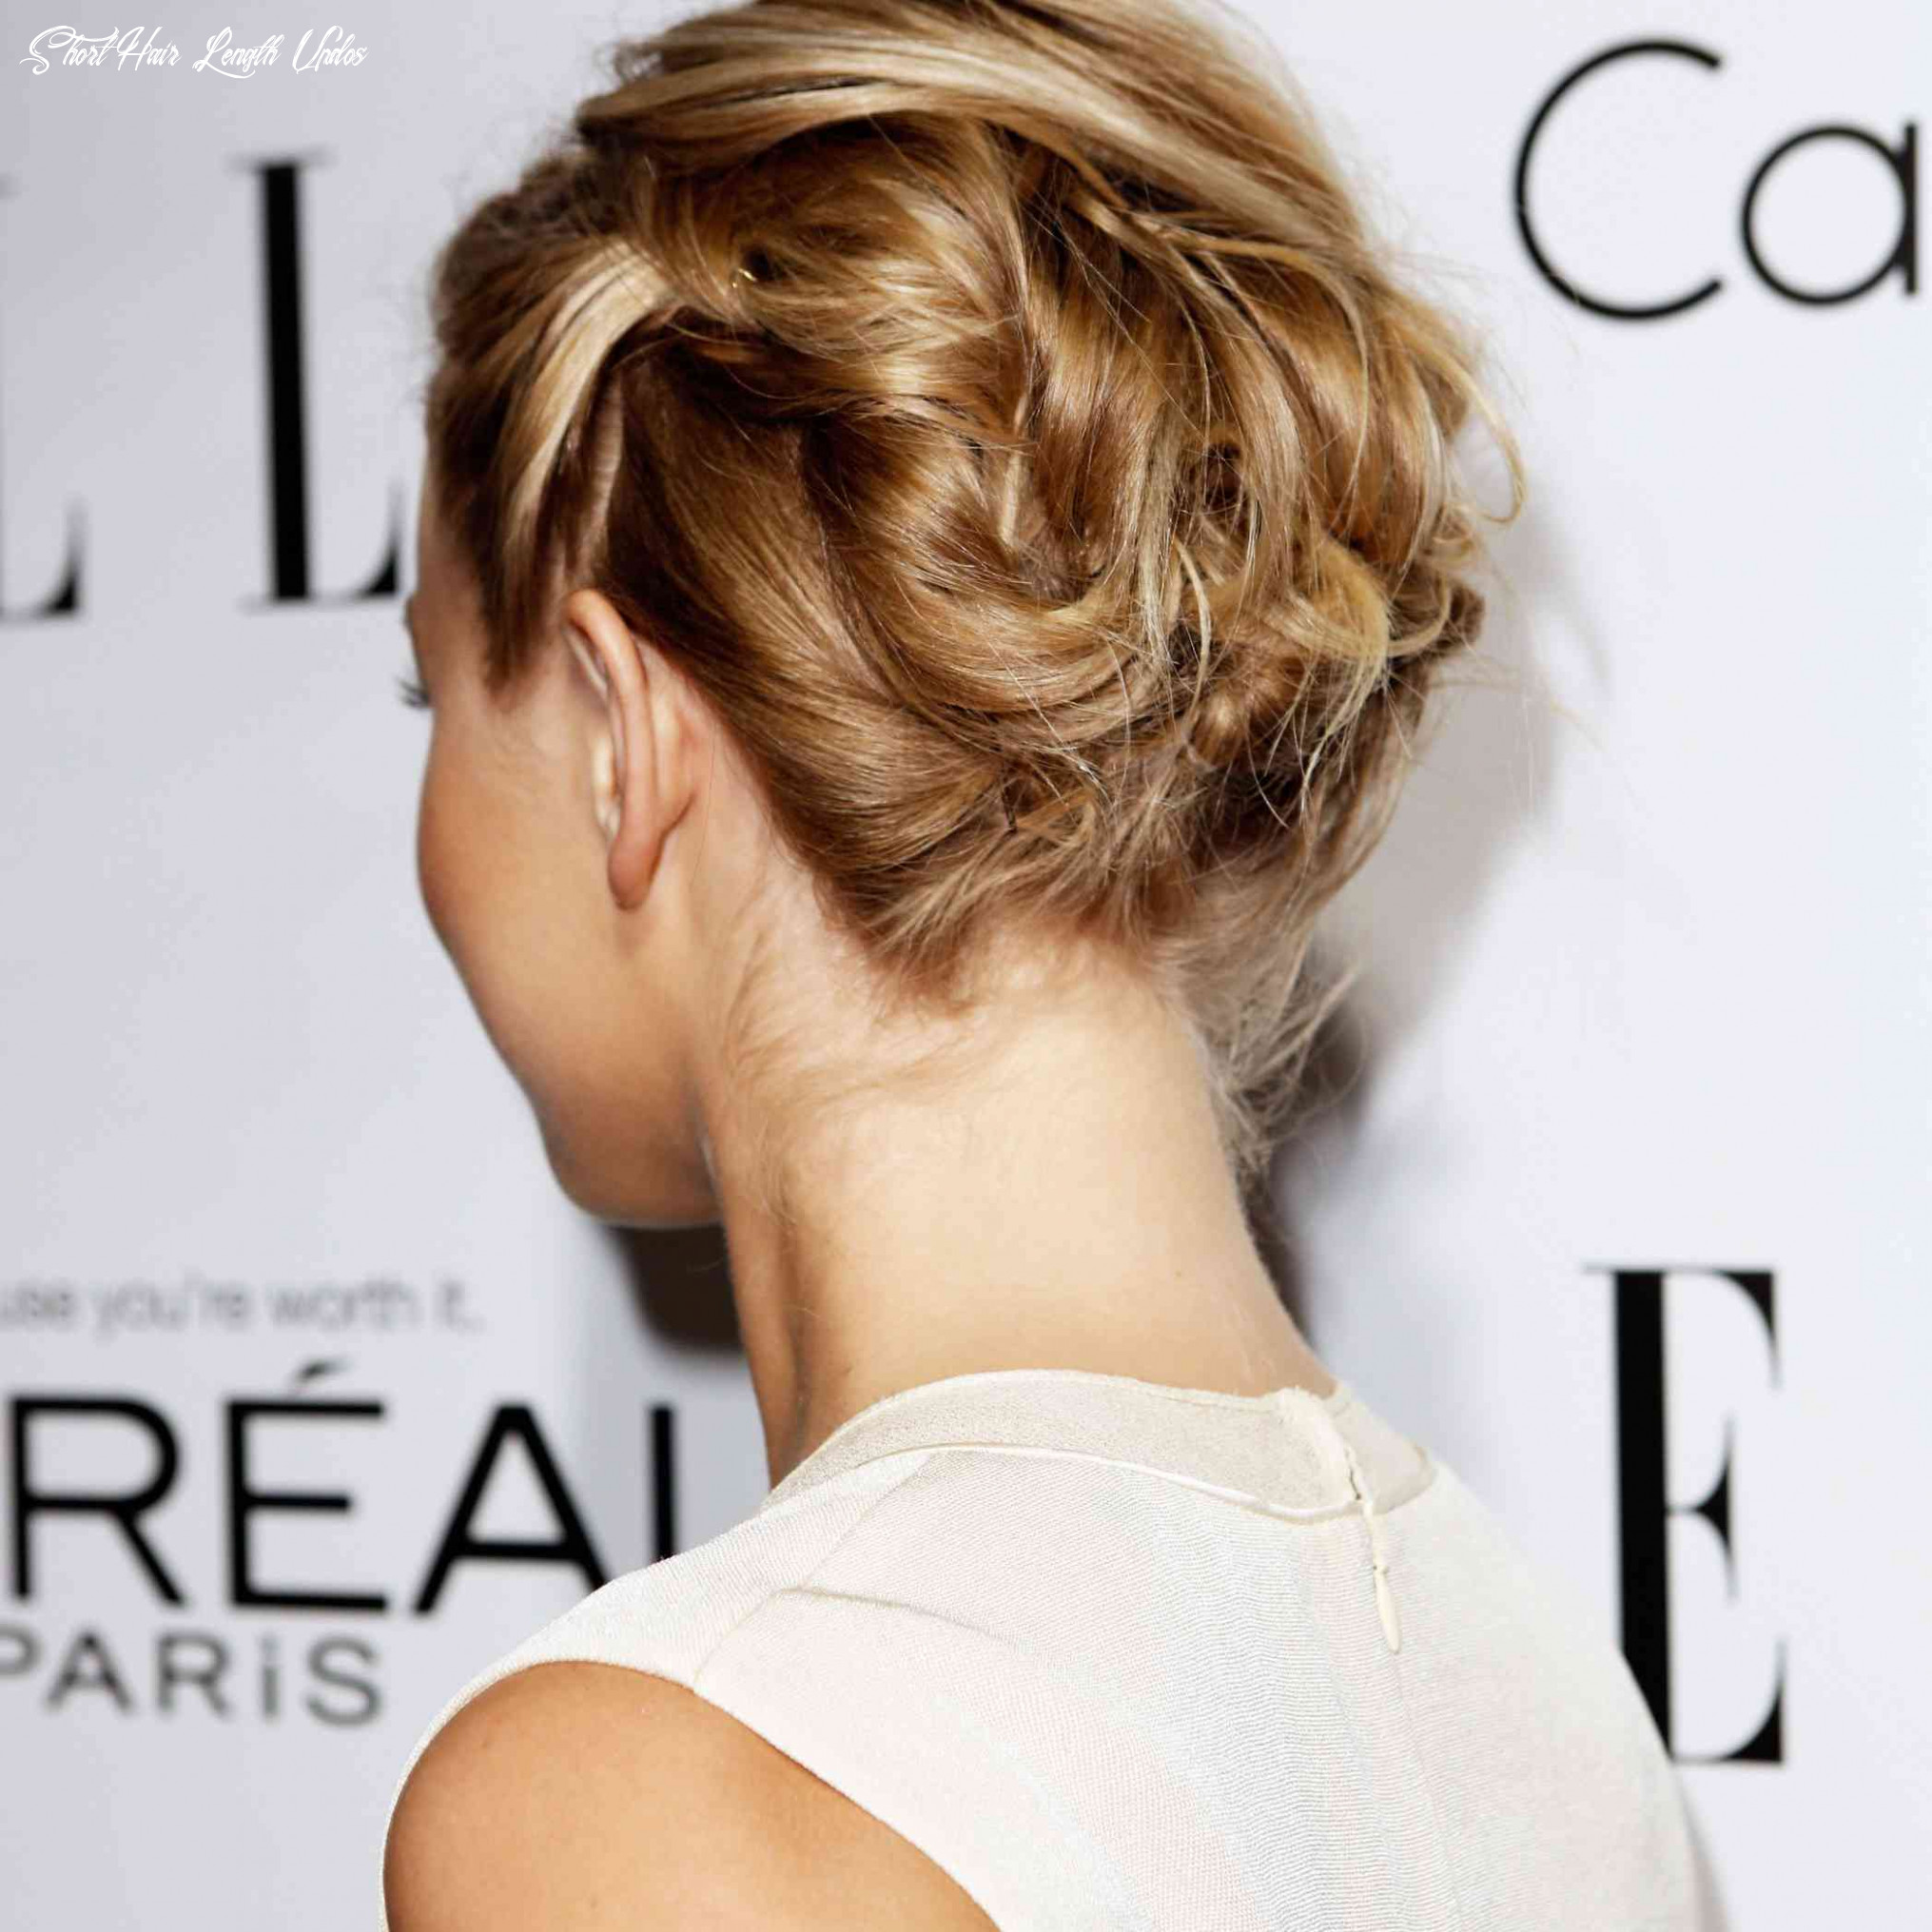 12 incredibly chic updo ideas for short hair short hair length updos